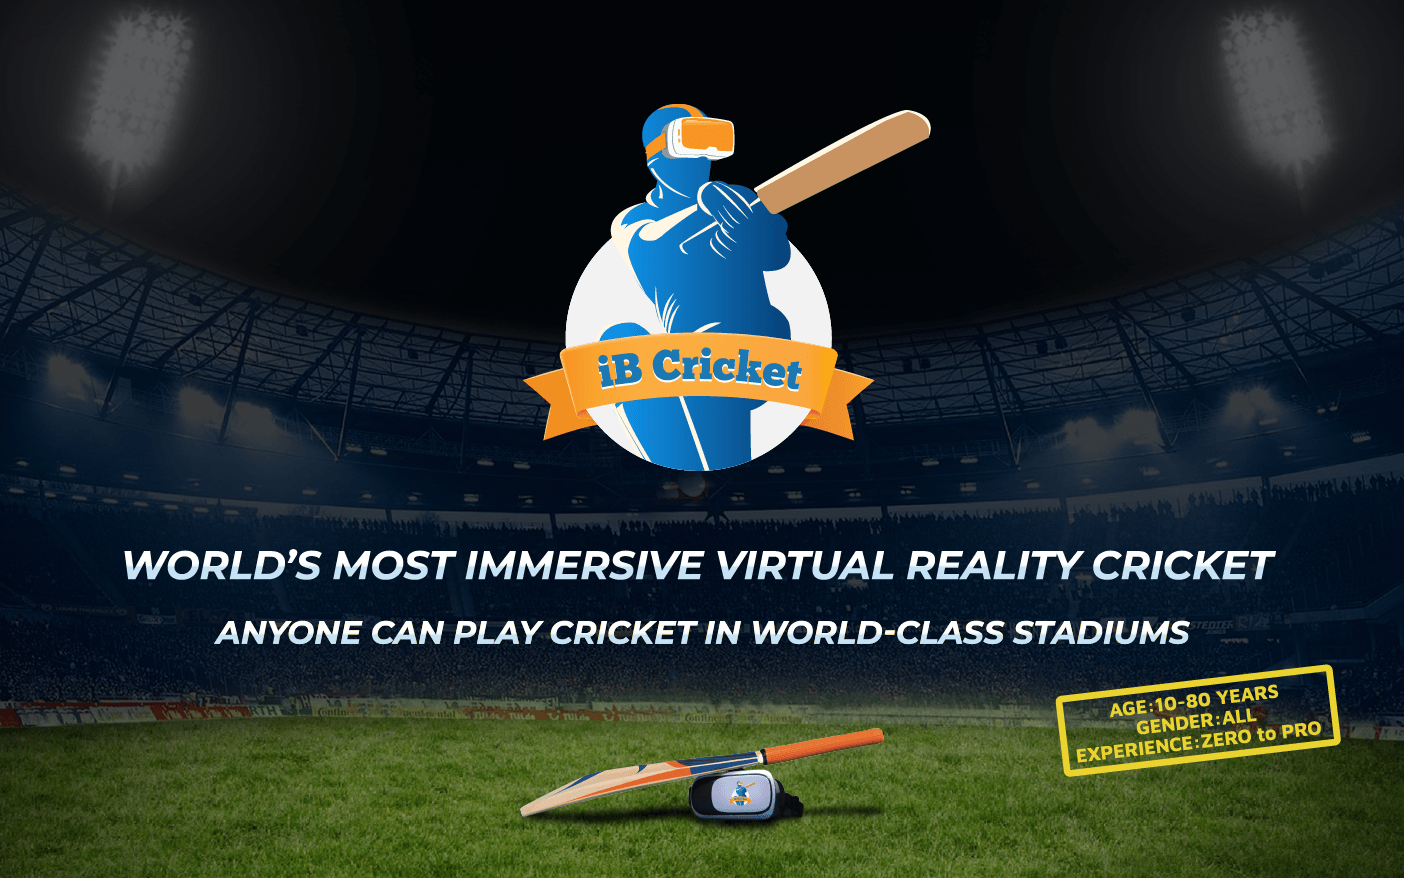 World's Most Immersive VR Cricket